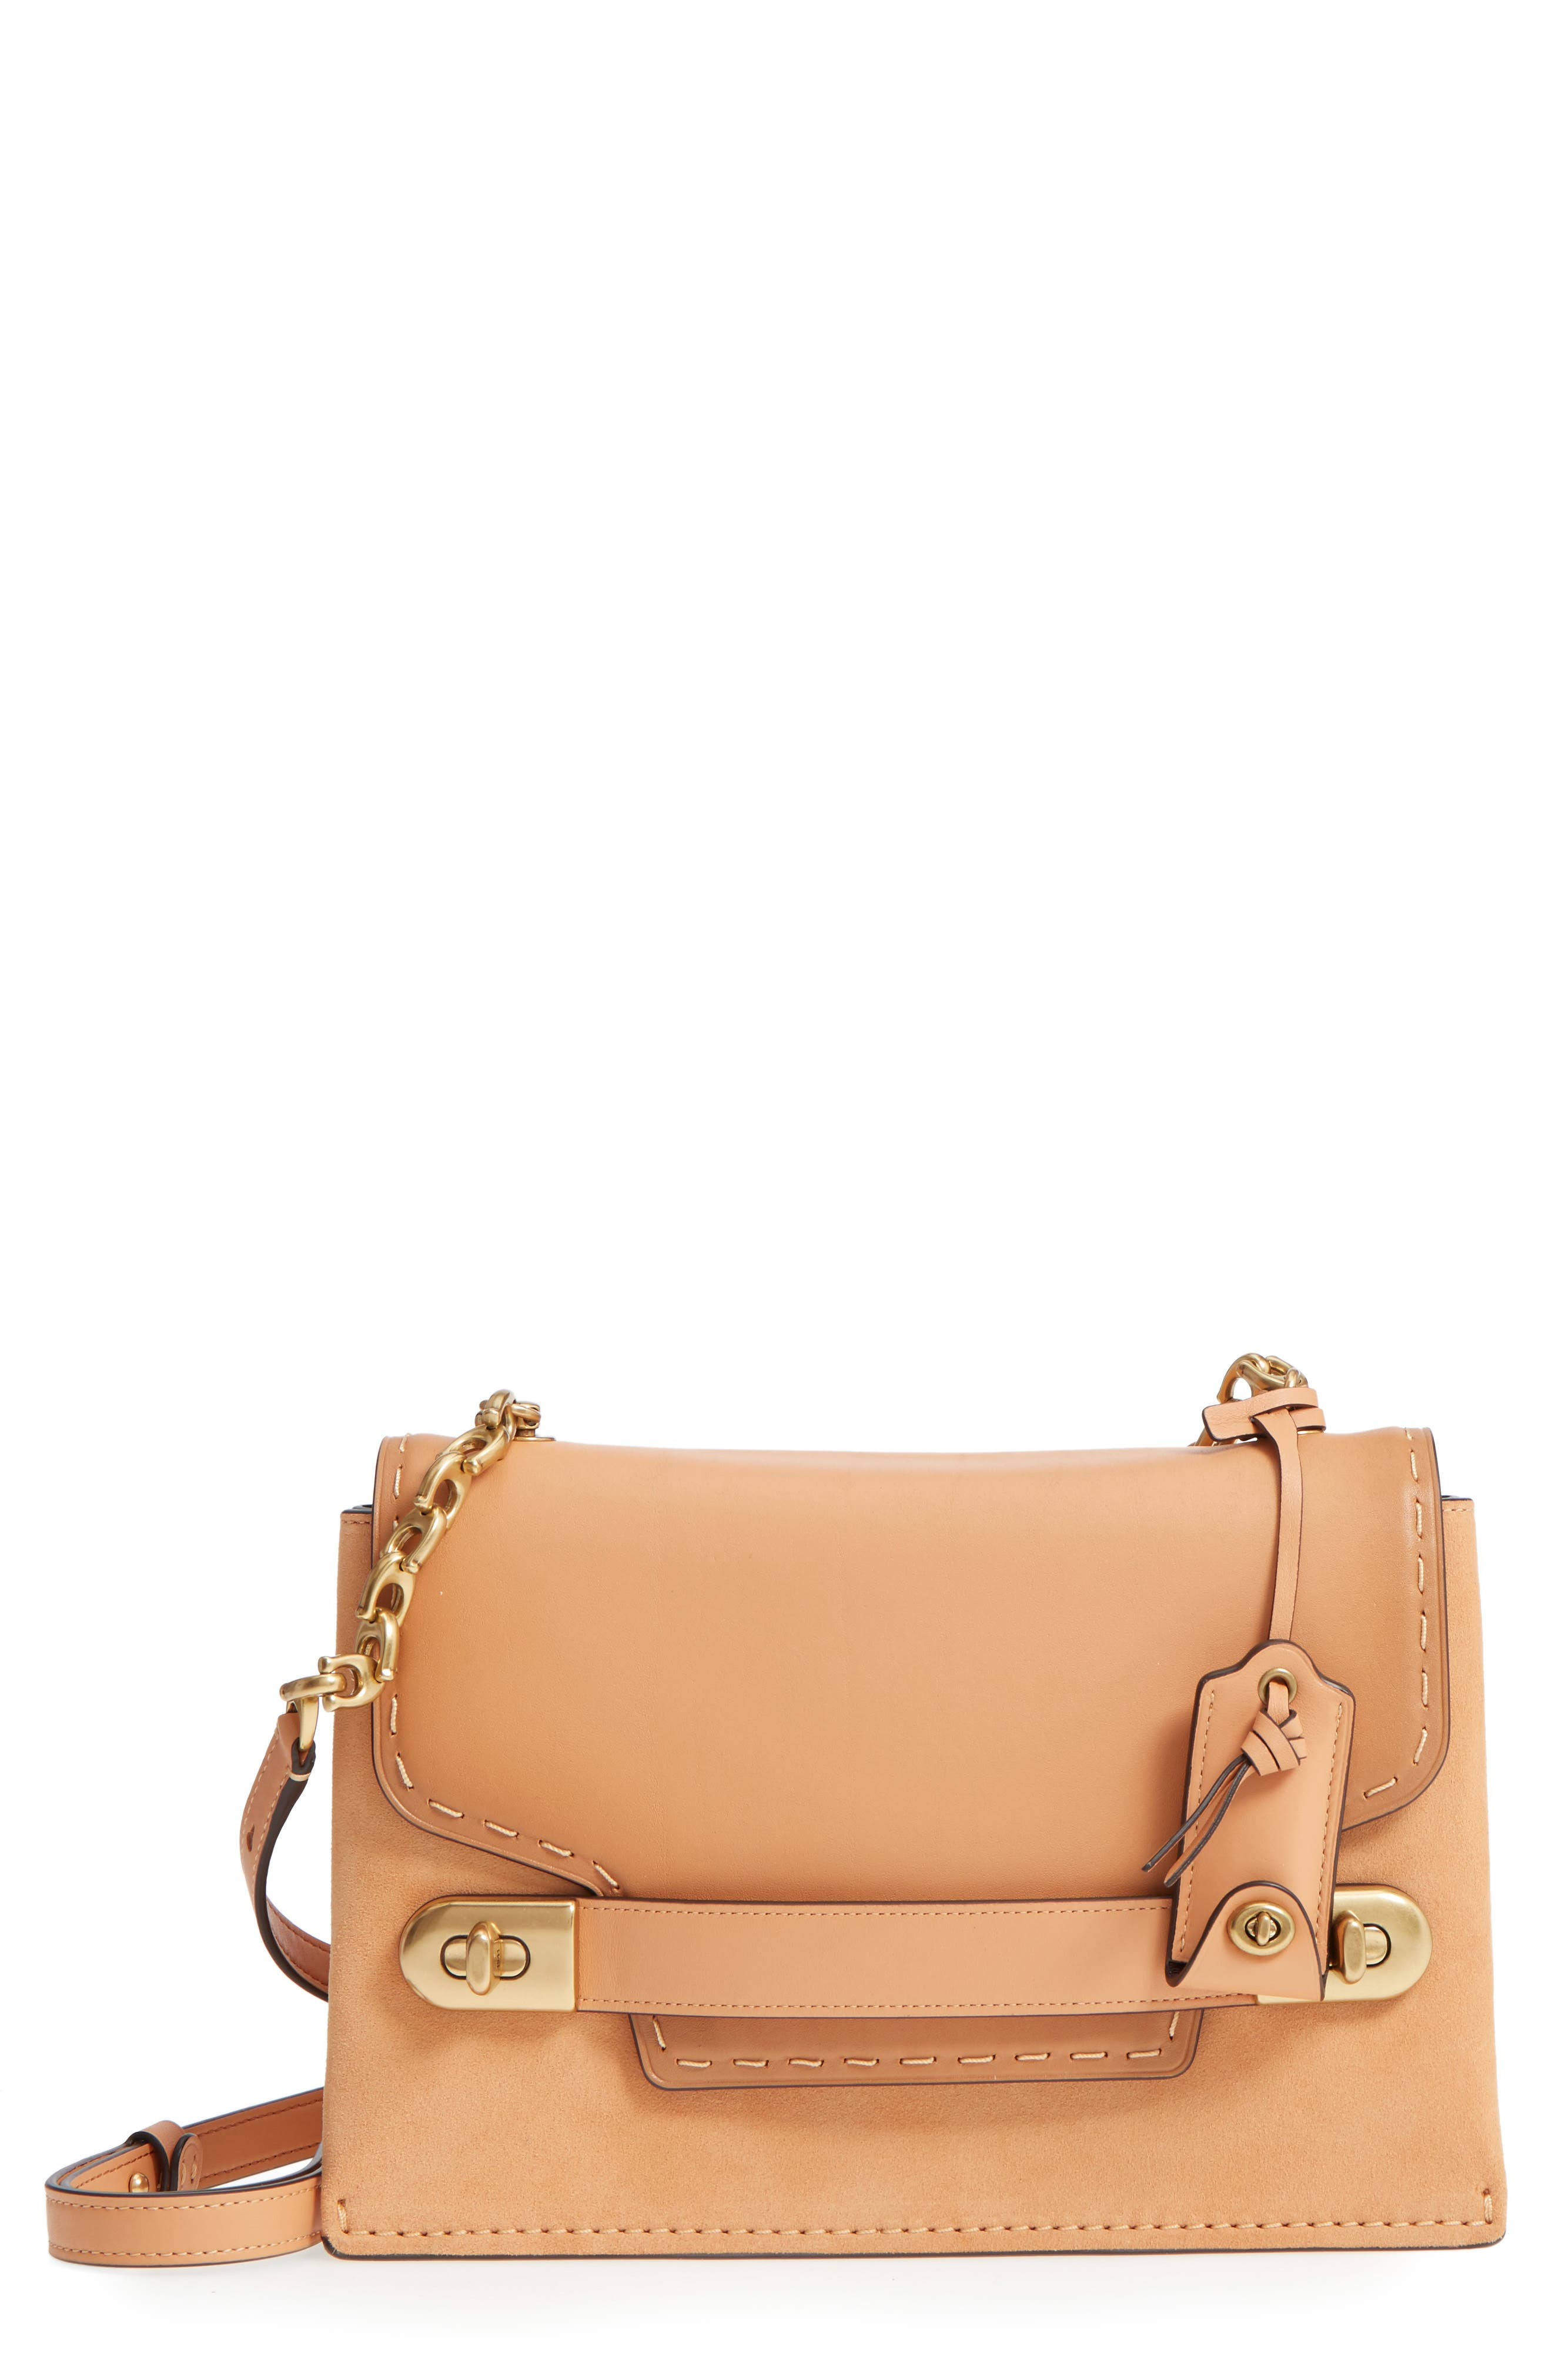 Swagger Chain Leather Crossbody Bag,                         Main,                         color, Apricot Sand